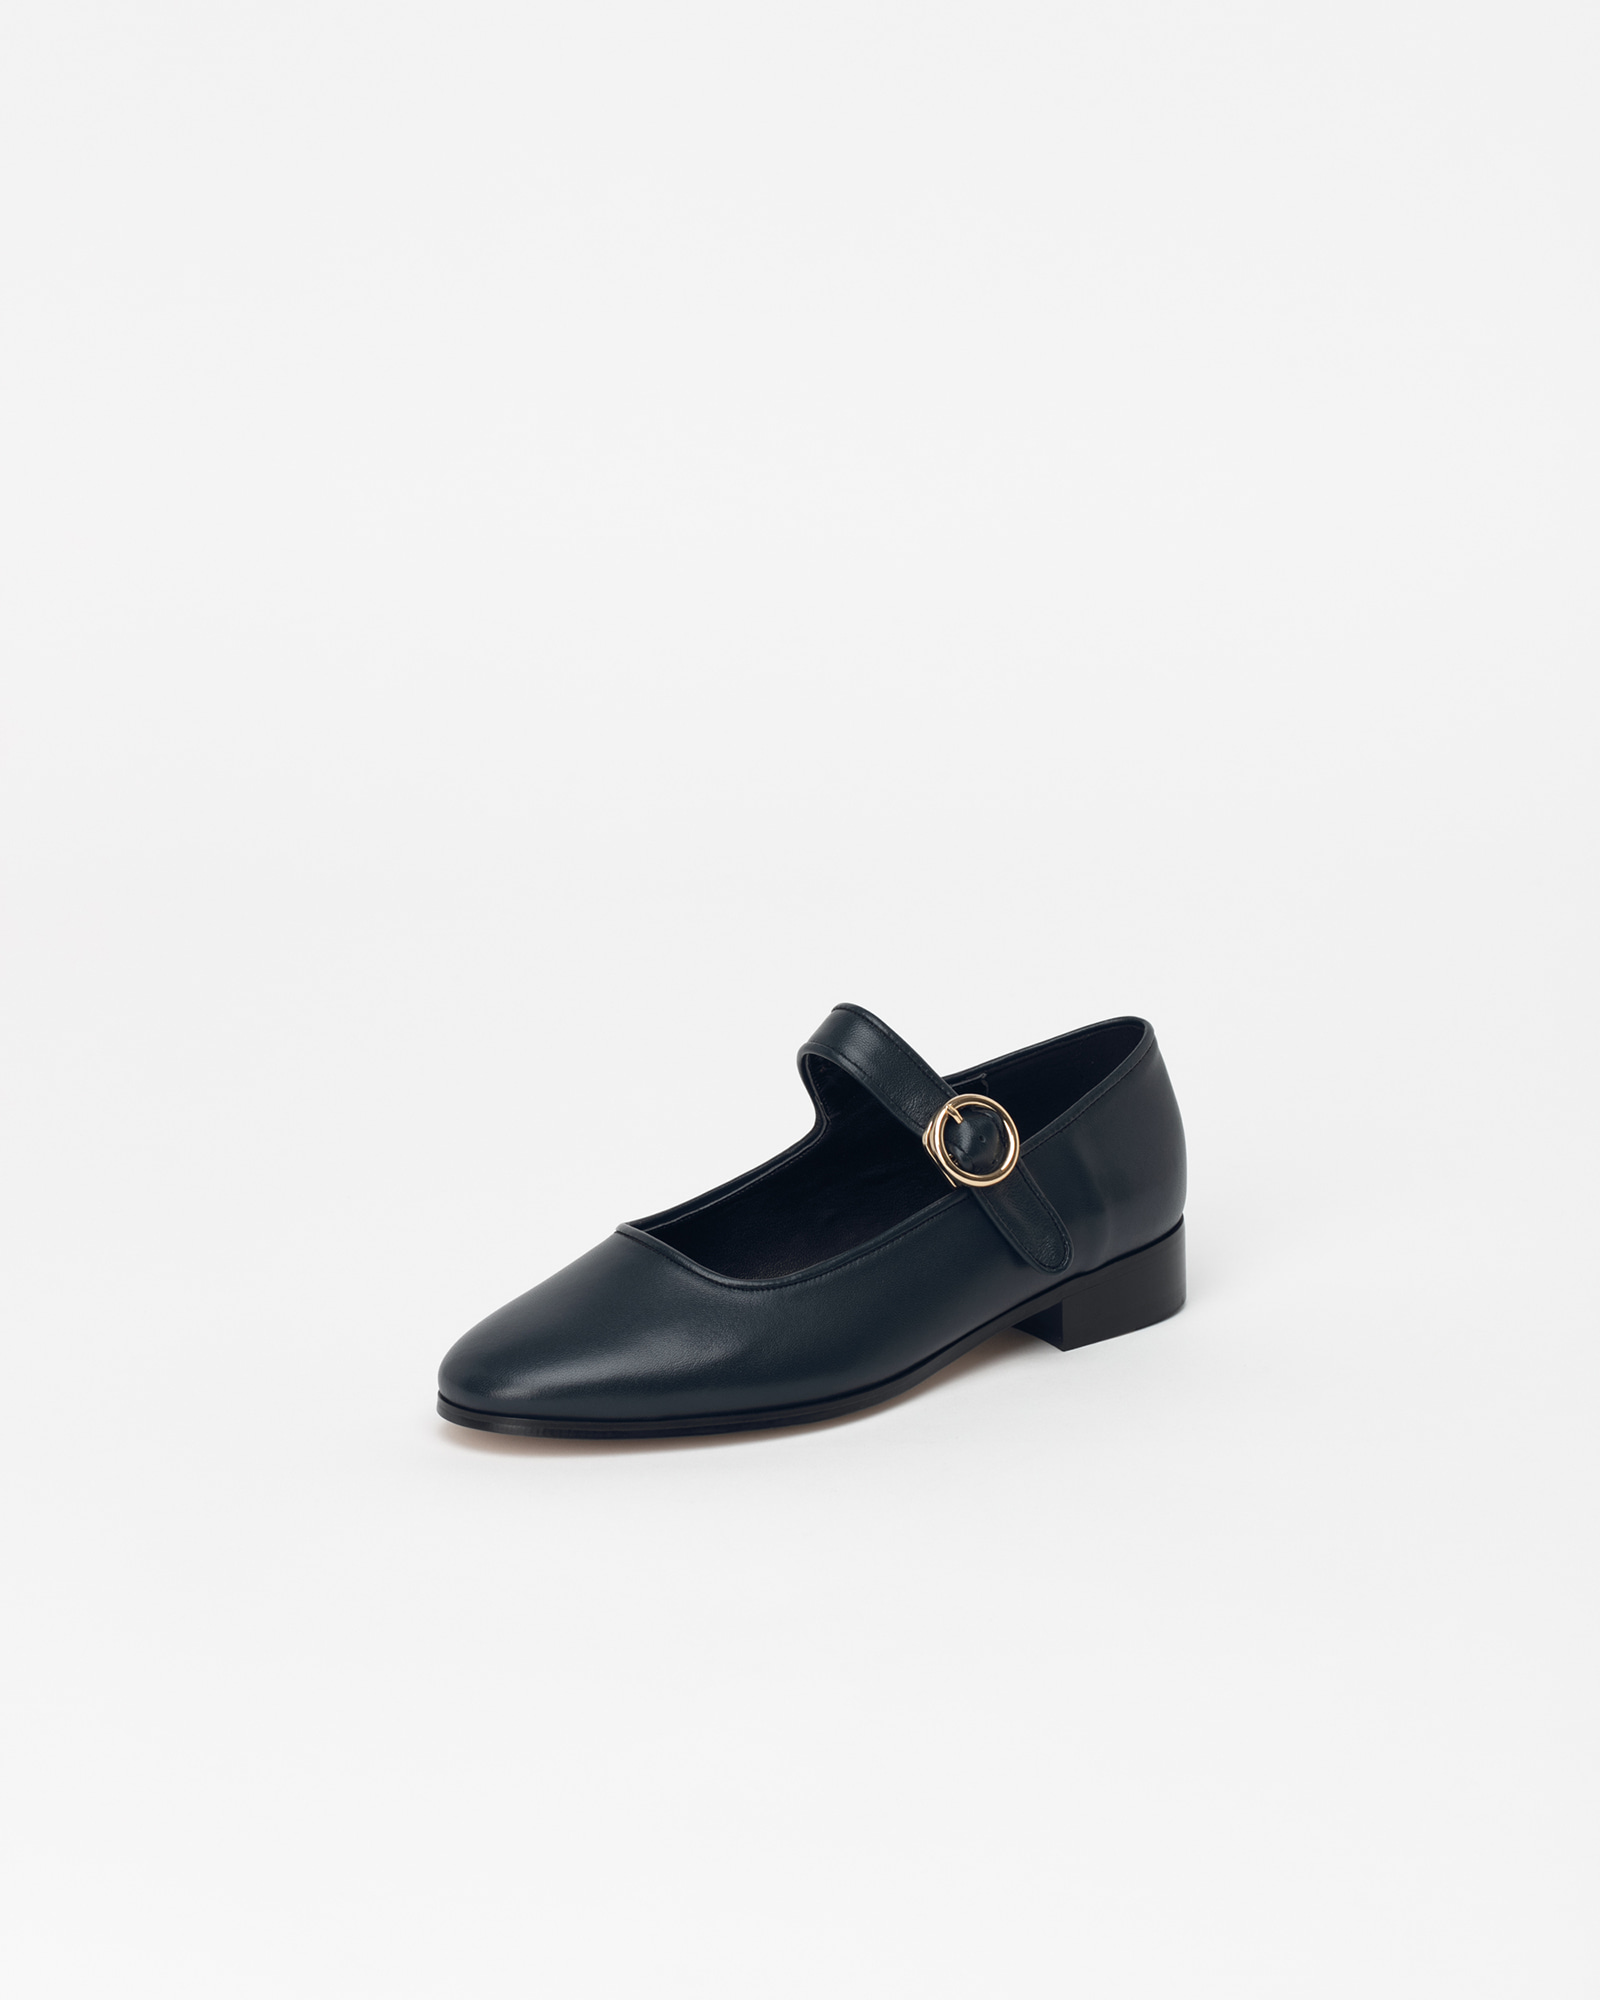 Benato Mary-jane Loafers in Midnight Navy